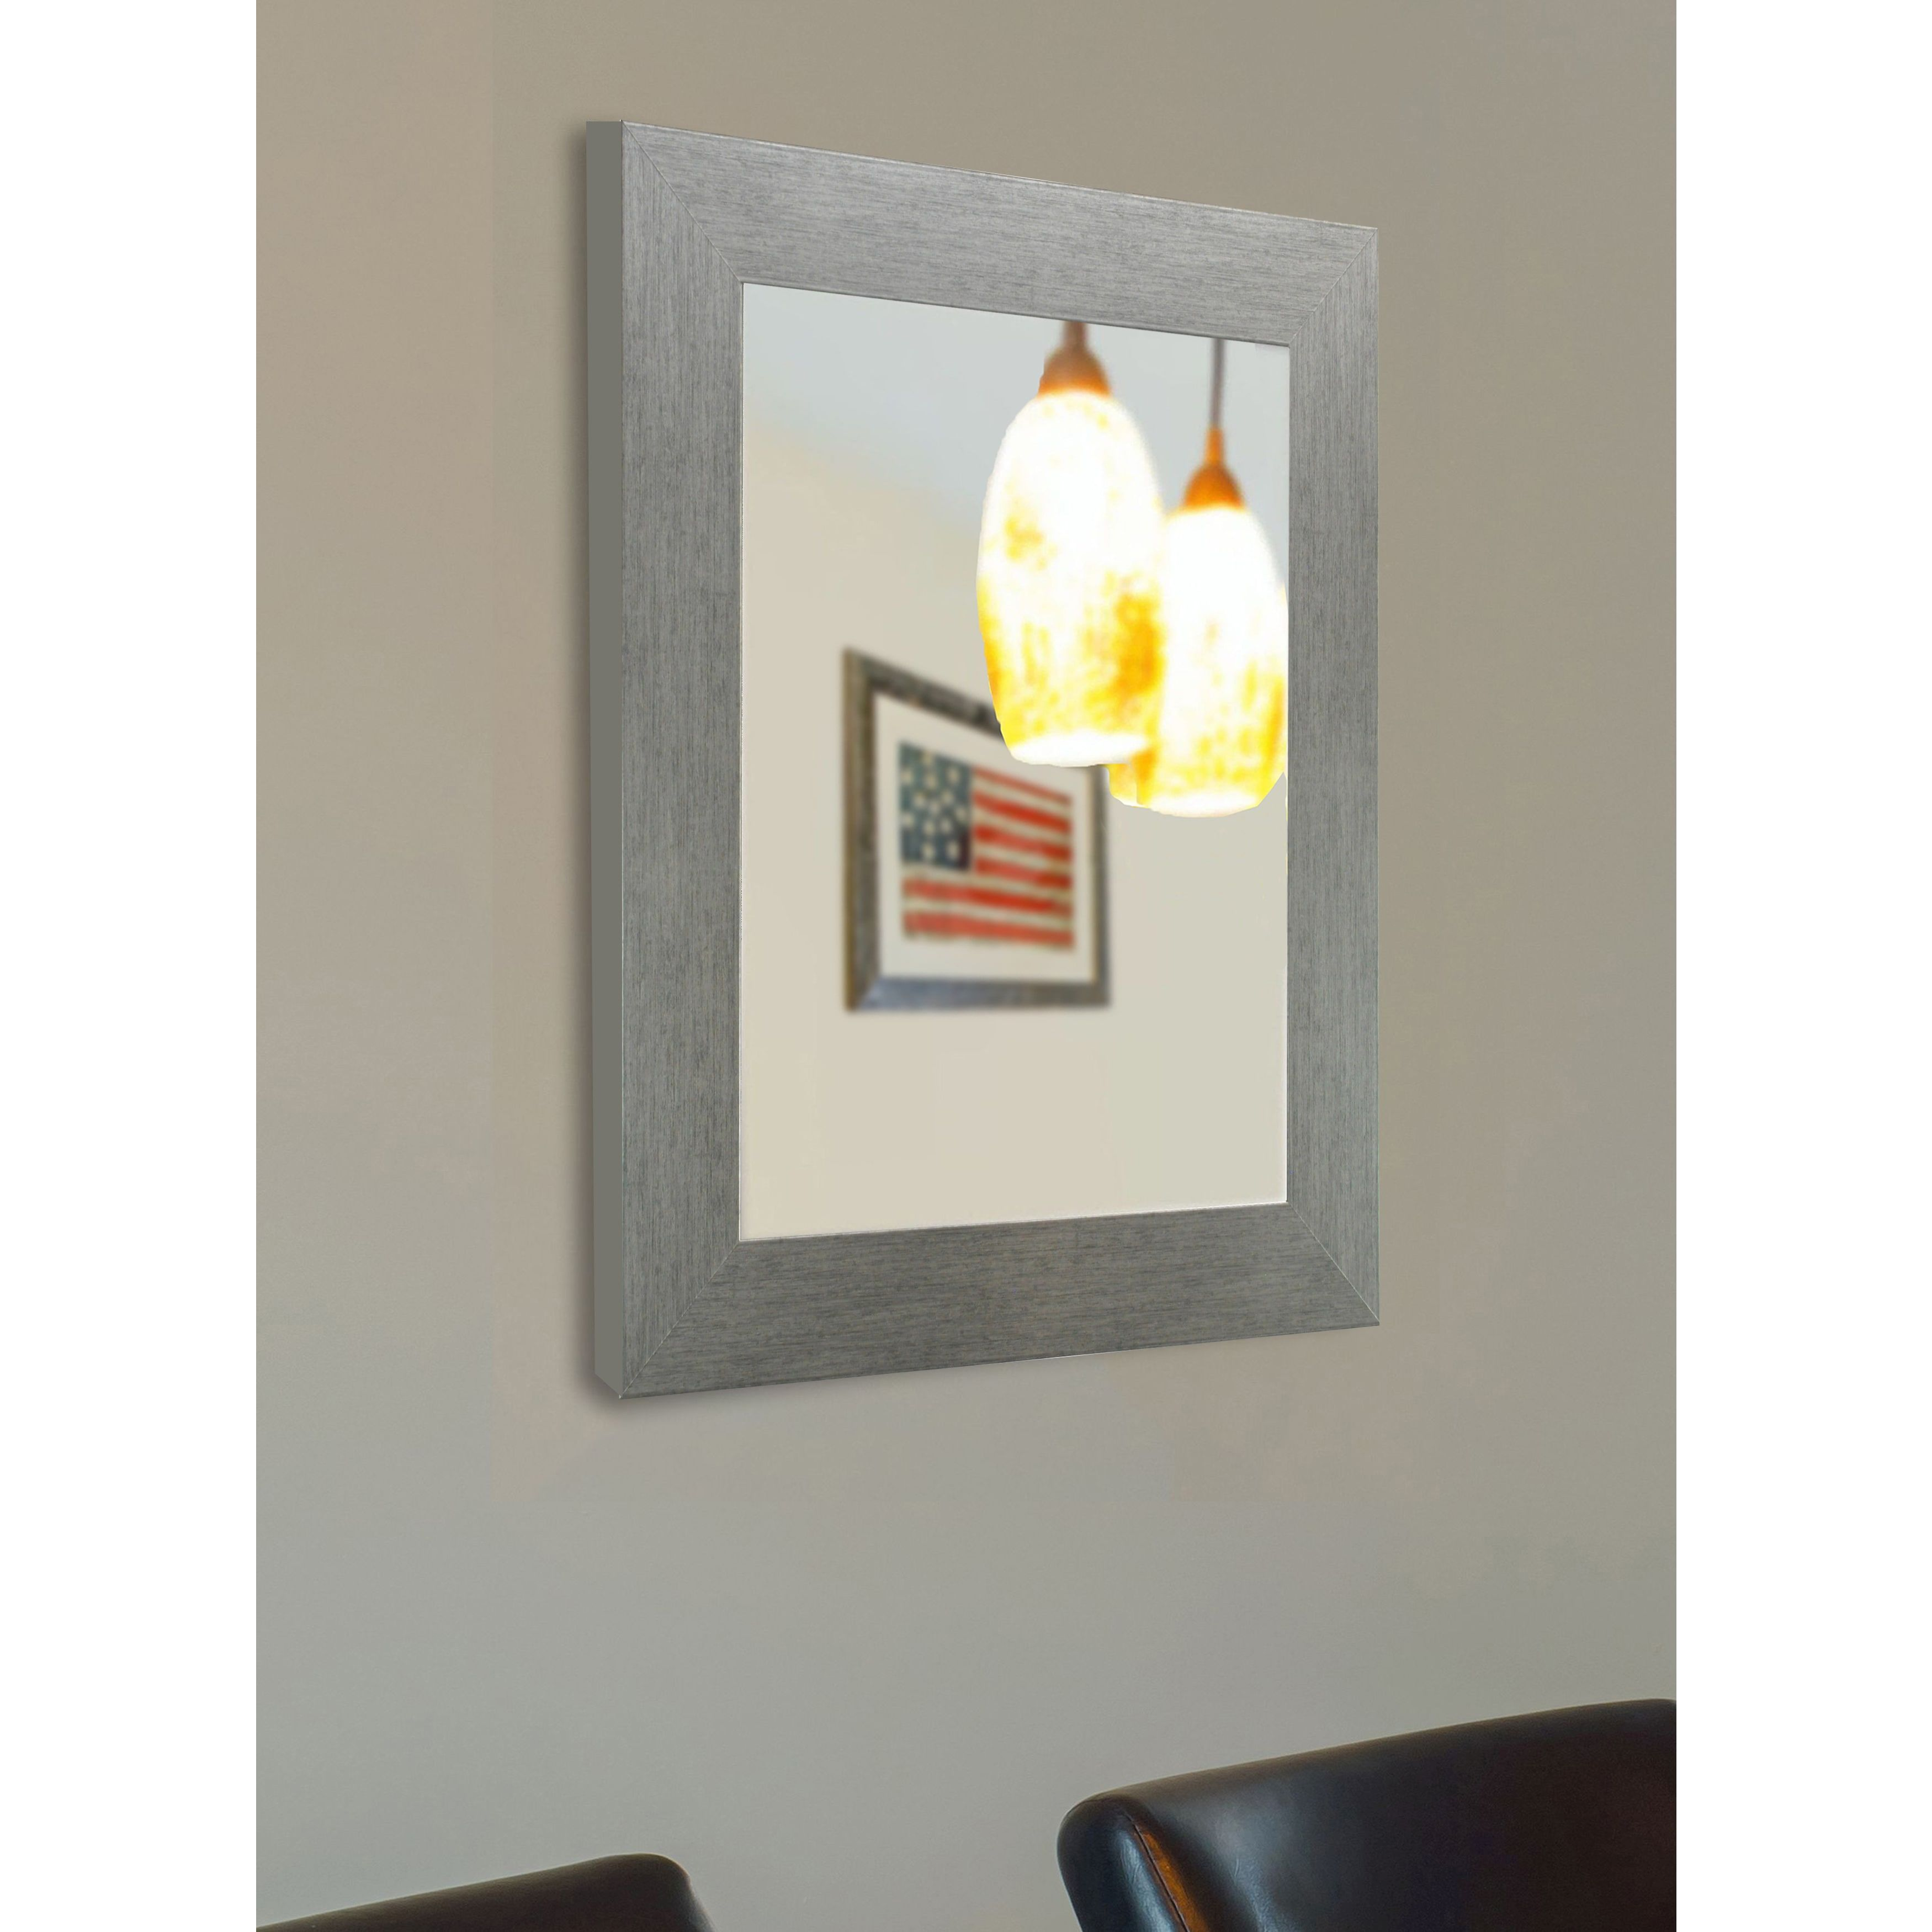 American made rayne yukon silver vanity wall mirror 40 x 60 american made rayne yukon silver vanity wall mirror 40 x 60 amipublicfo Image collections